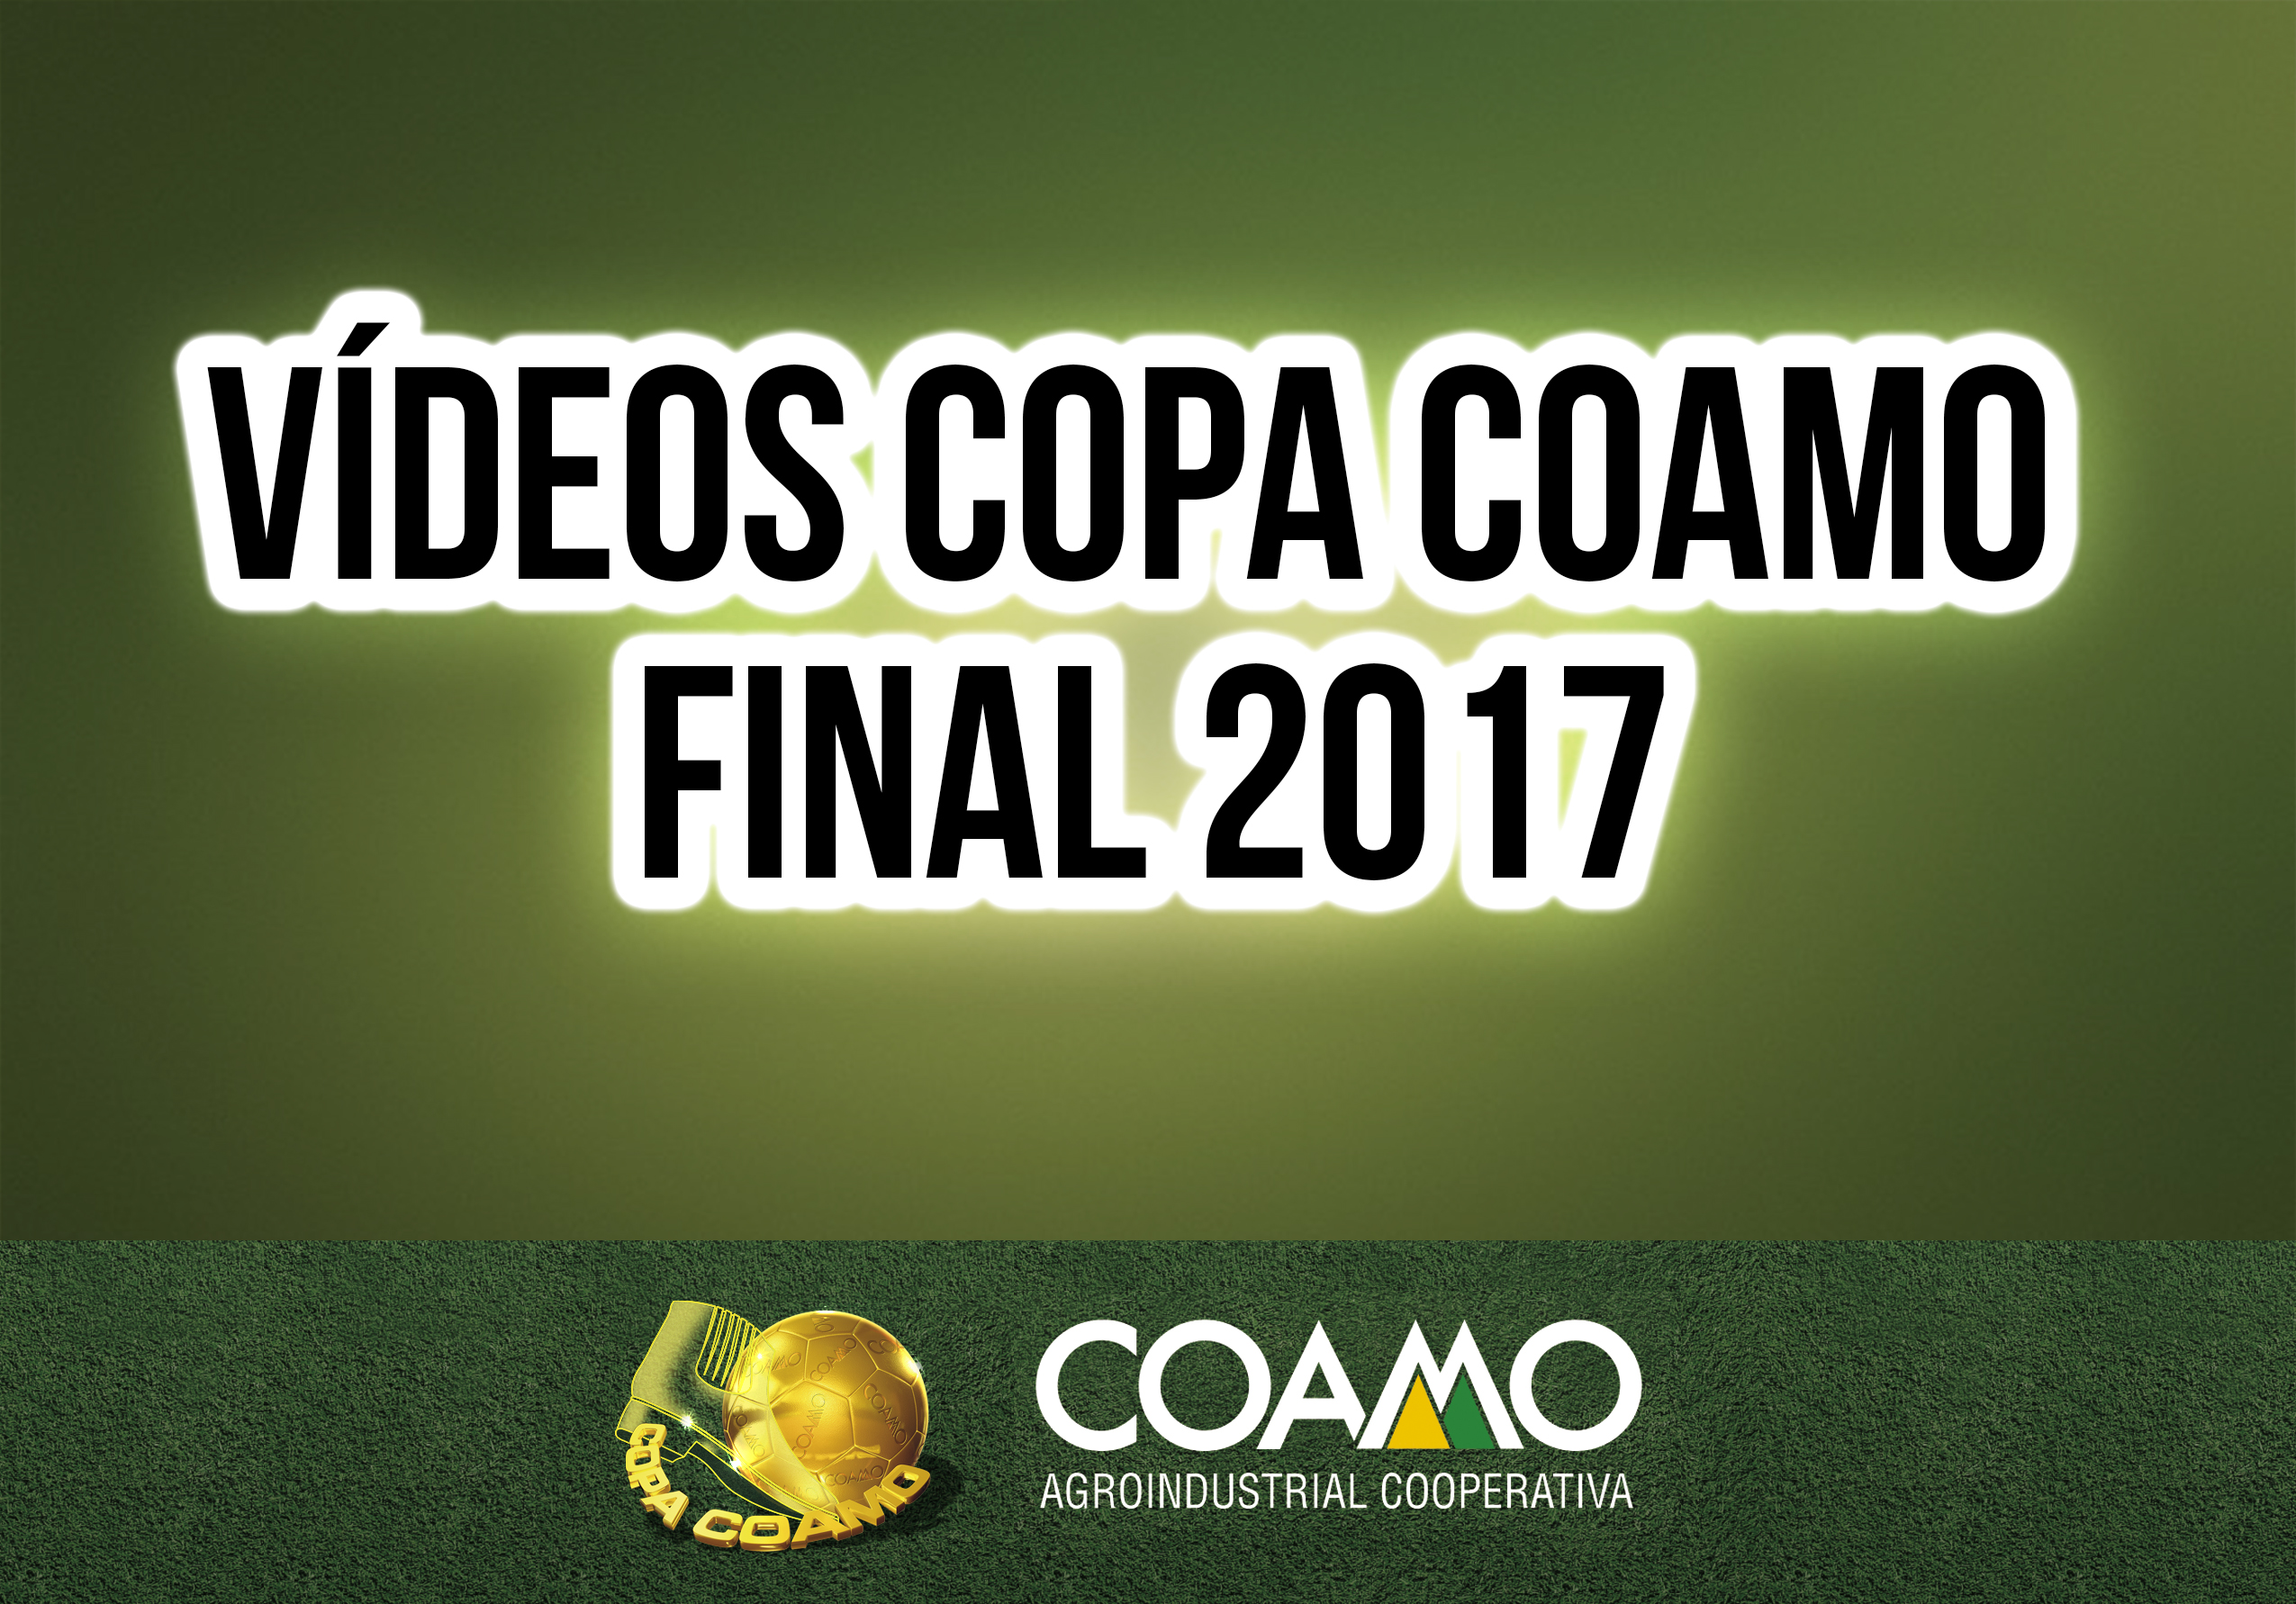 Vídeo Copa Coamo Fase Final 2017 - 1 Minuto